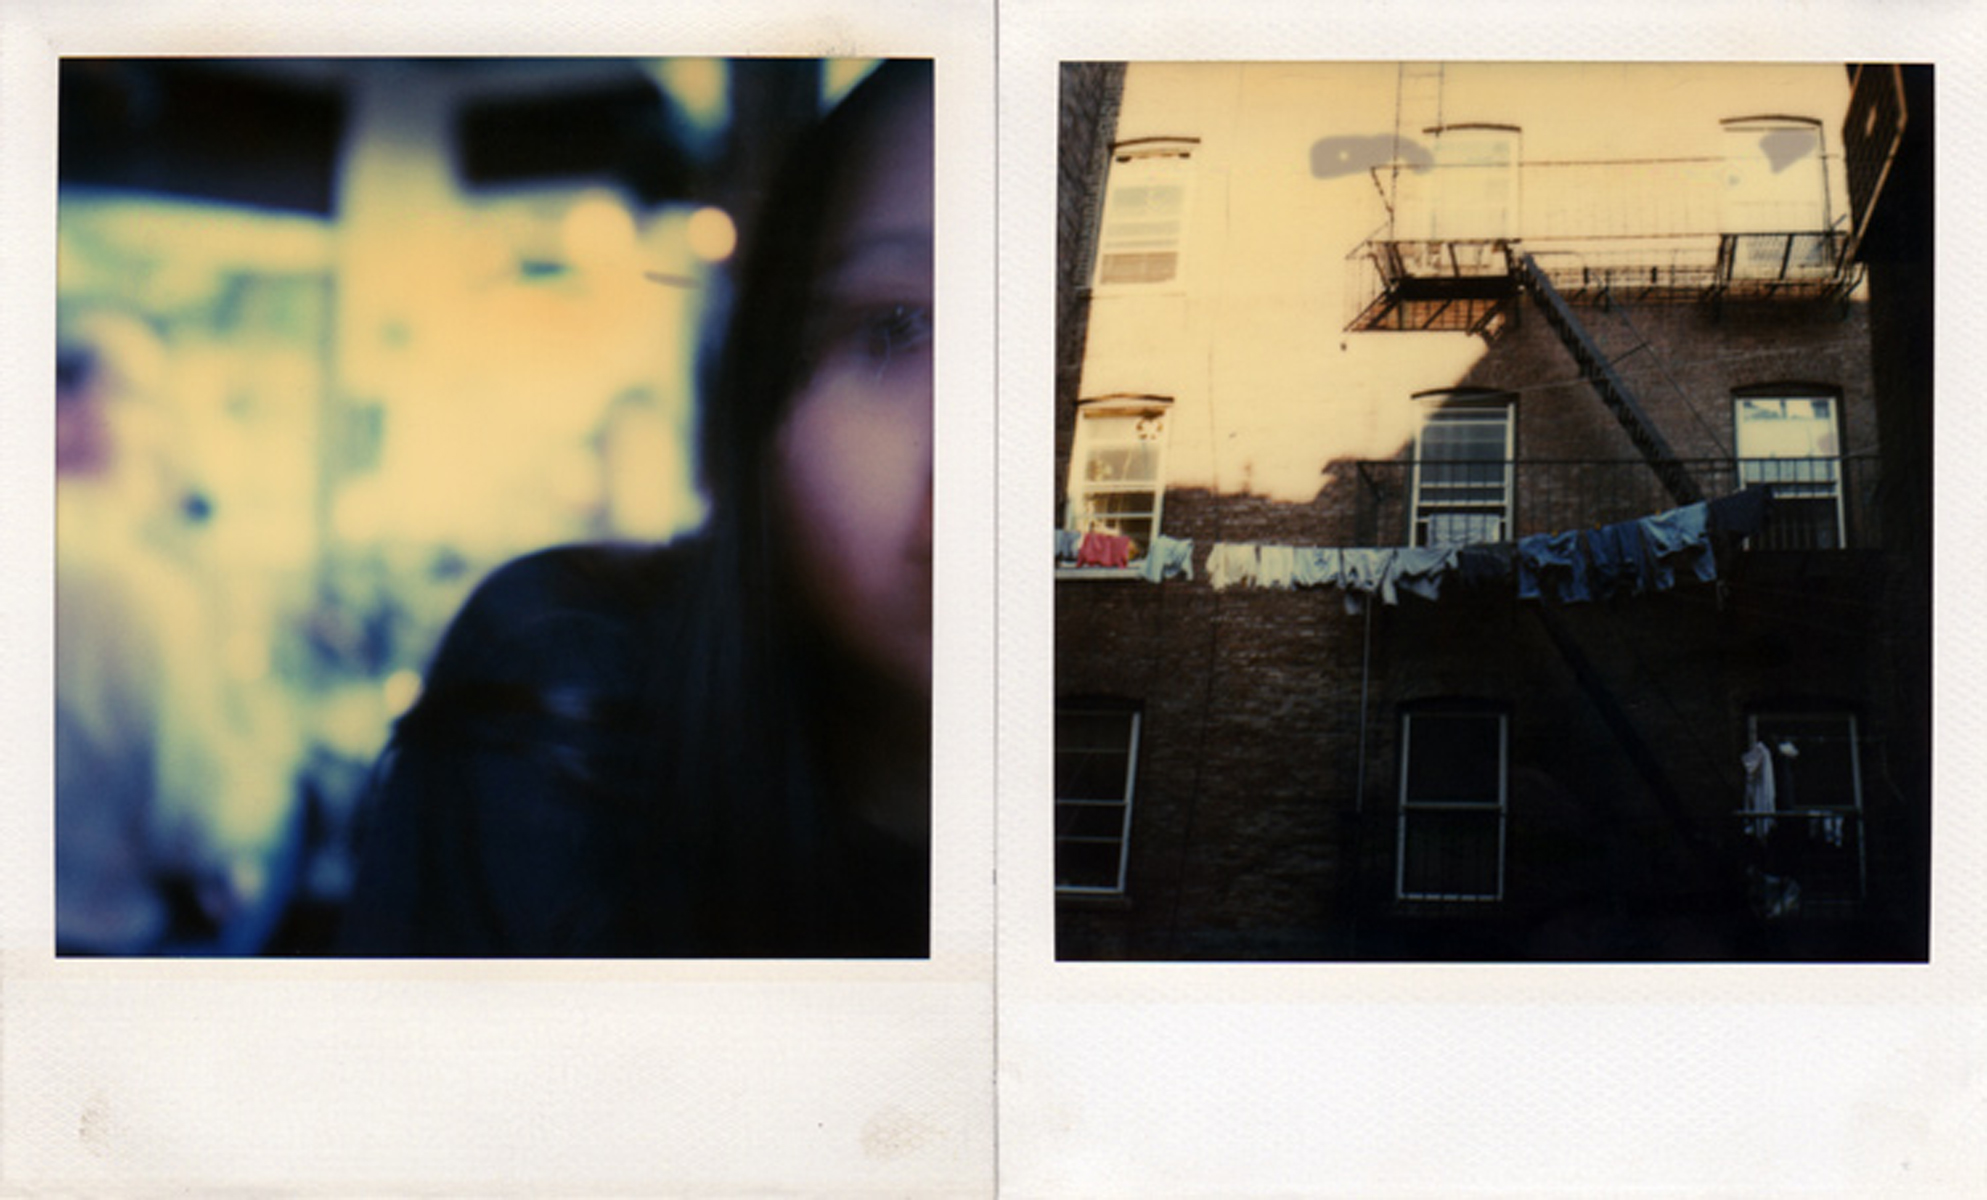 Suzanne at a cafe in North Beach, San Francisco, California, 1996 (left); The view from my rear wndow apartment - bedrooms and fire escapes, Nolita District, New York City, 1997 (right).